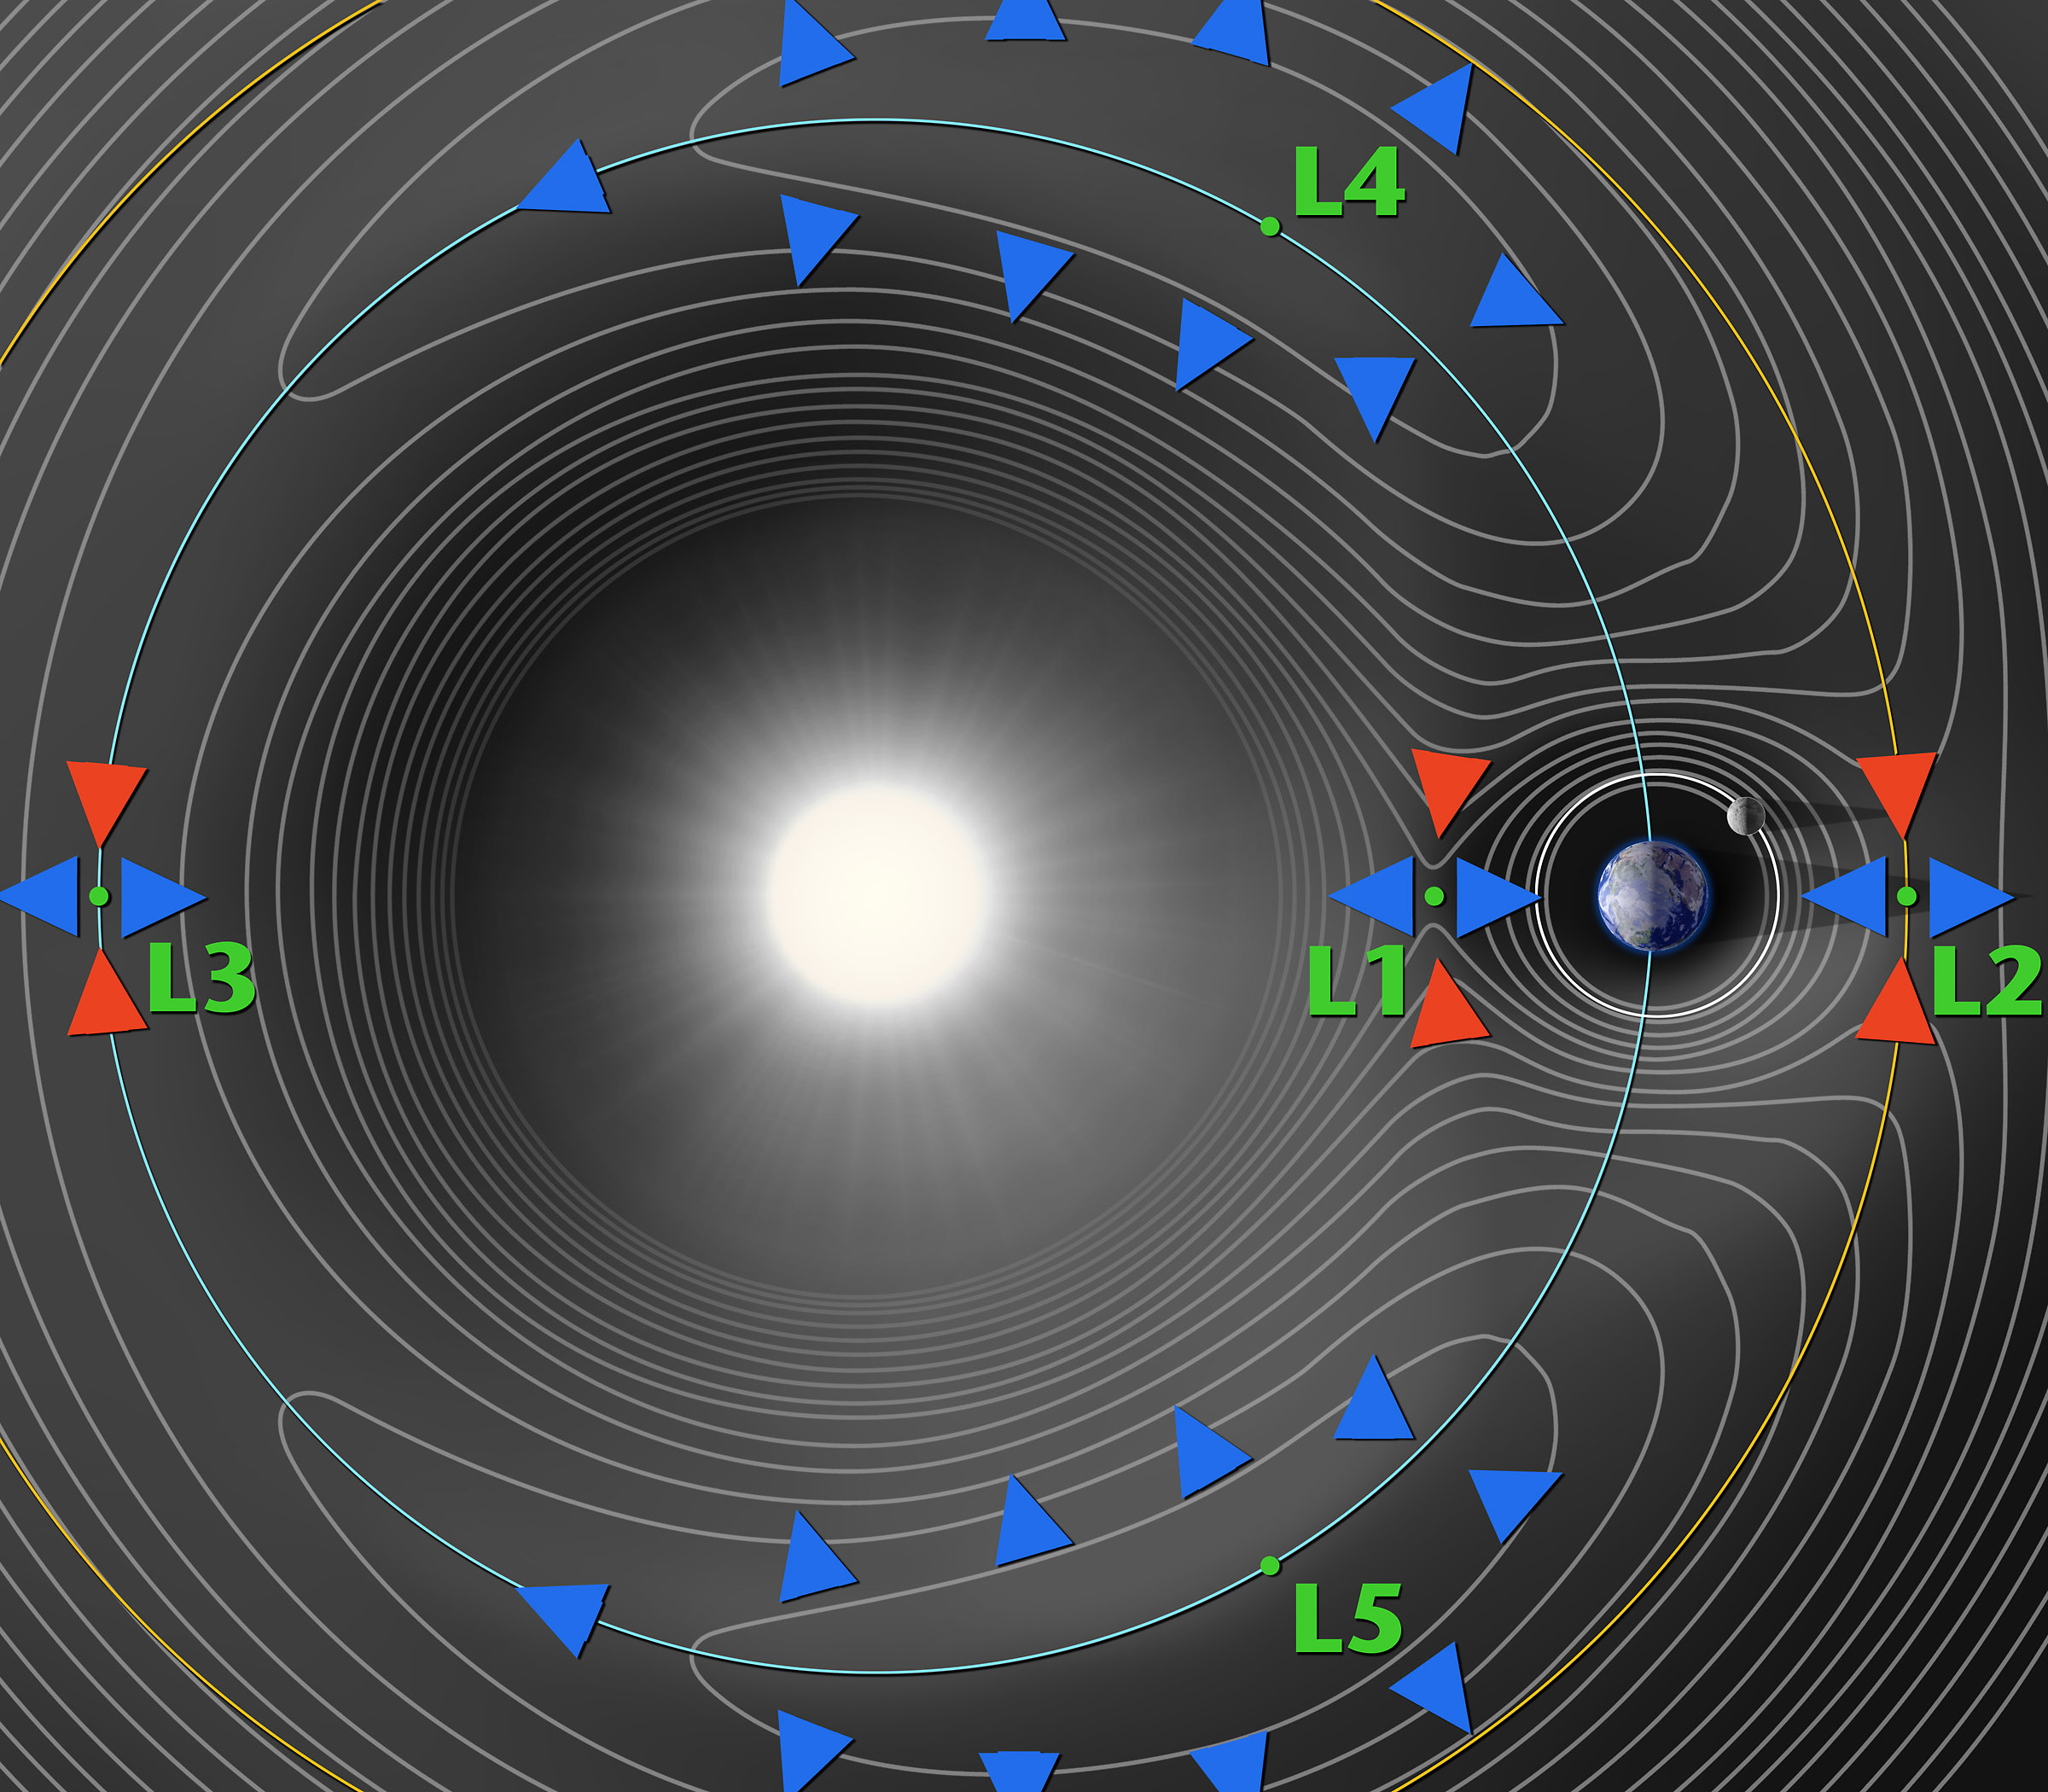 A contour plot of the gravitational potential of the Sun and Earth, showing the five Lagrange points